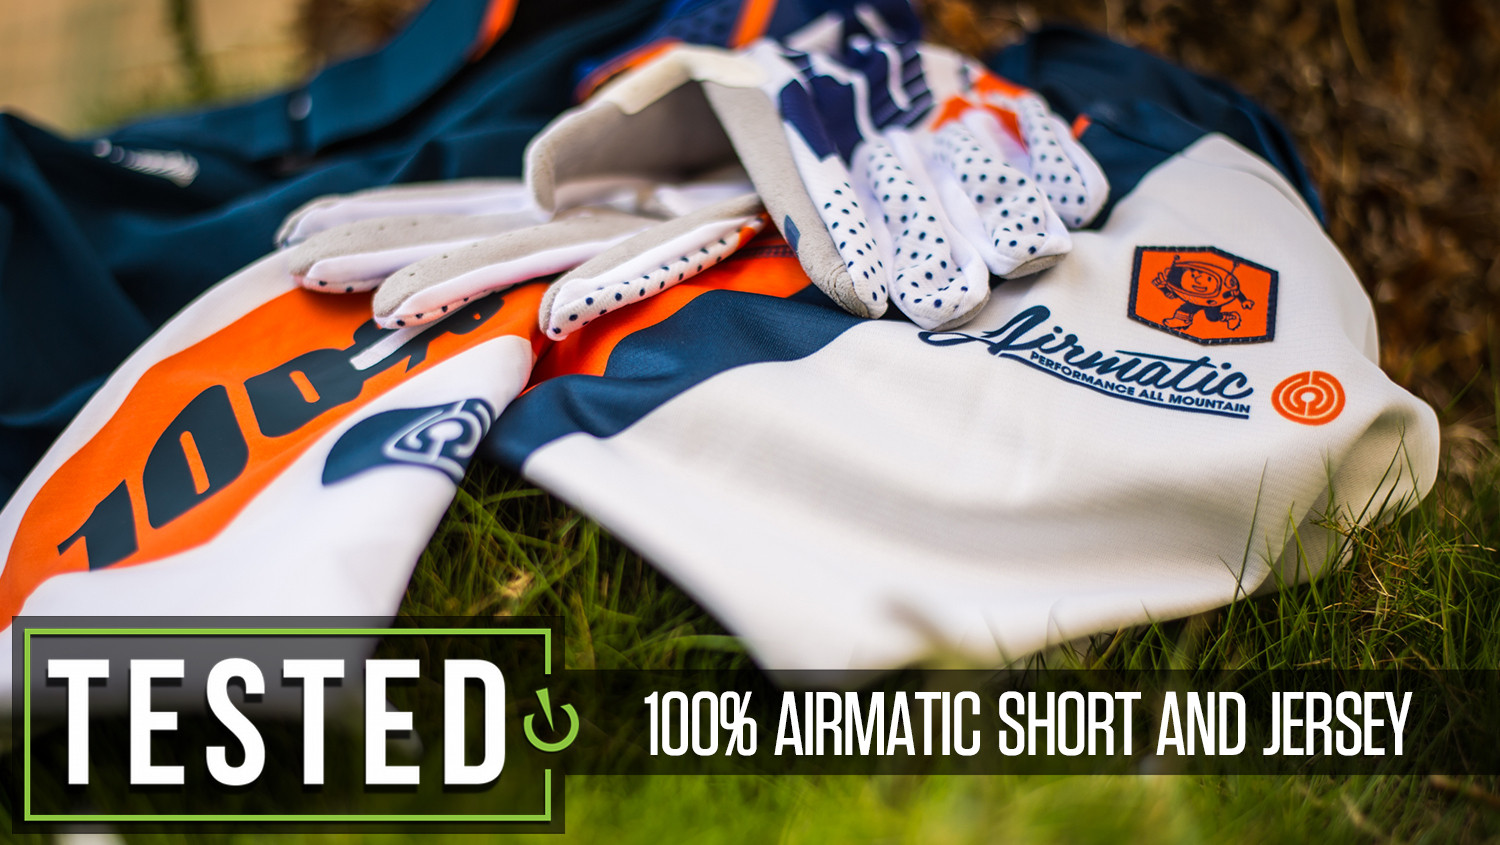 Tested: 100% Airmatic Short and Jersey